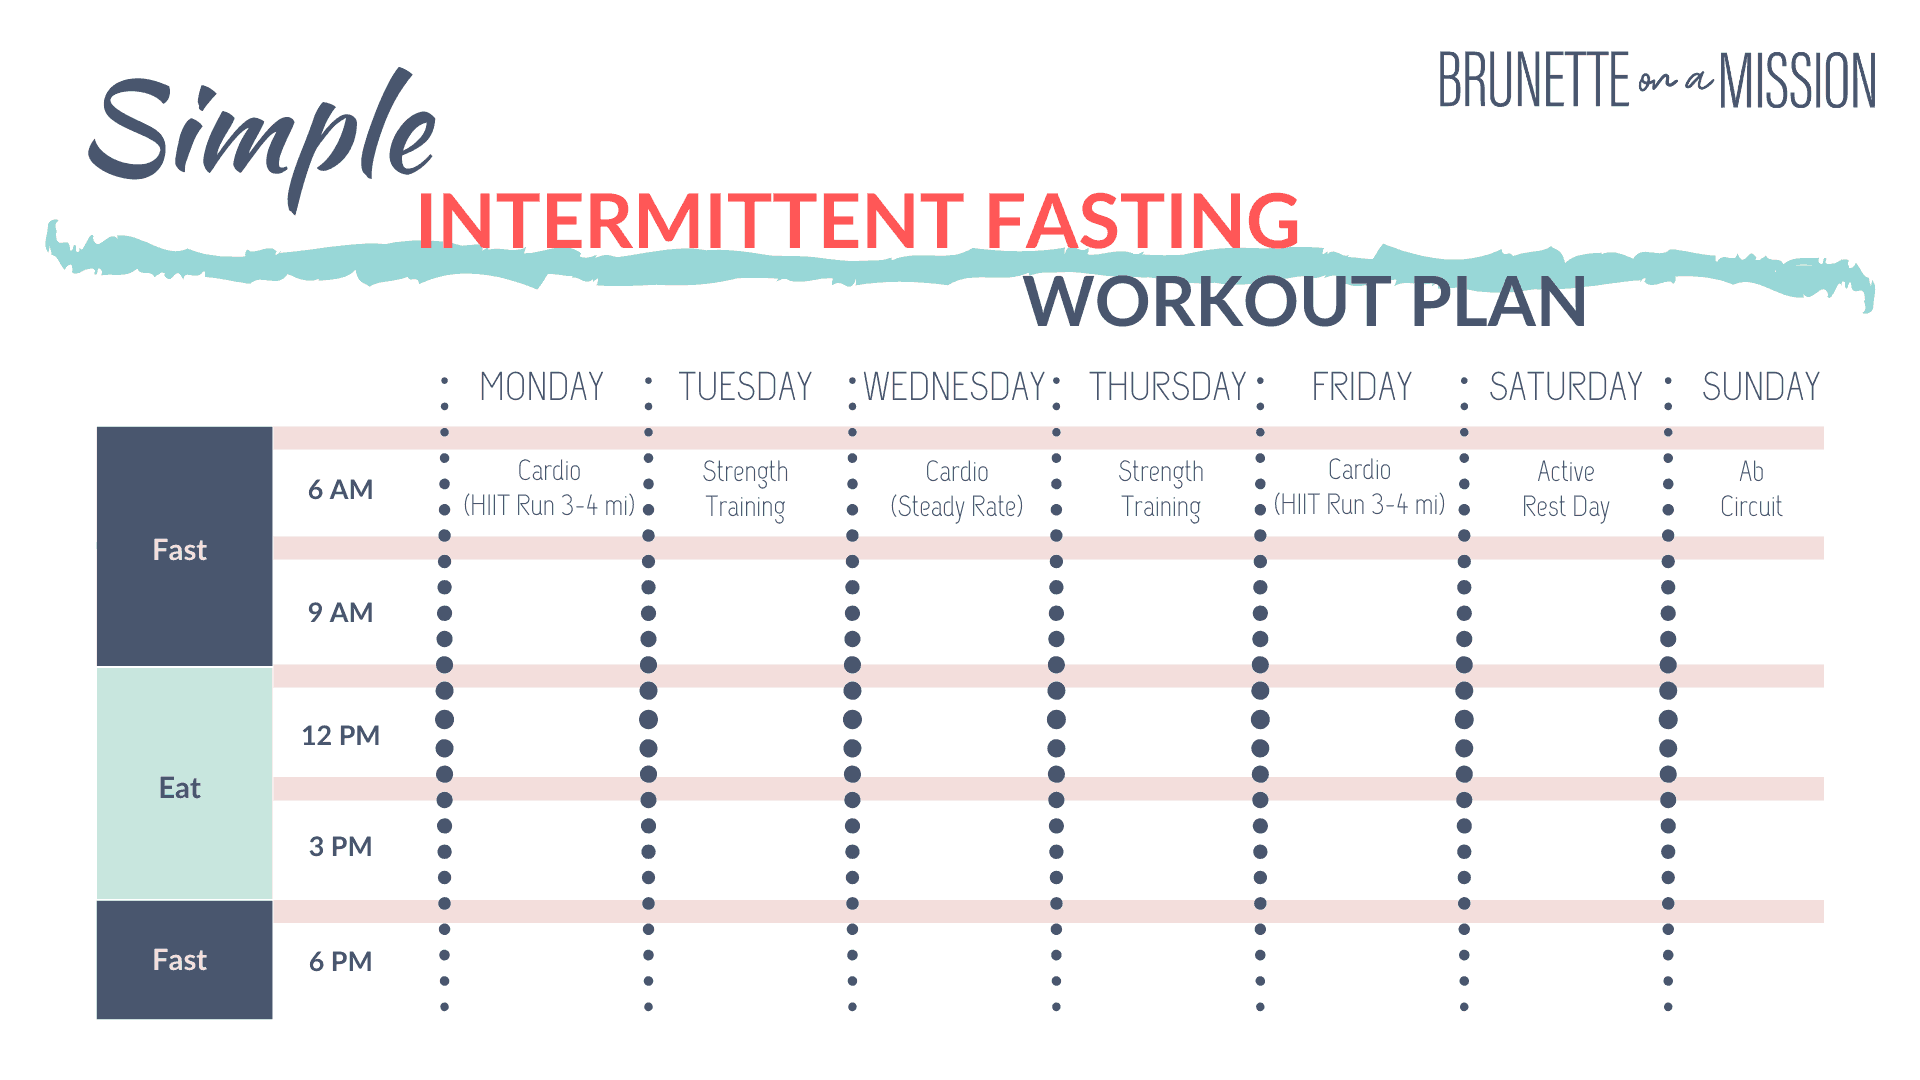 Simple Intermittent Fasting Workout Plan - PDF version to print out and use.